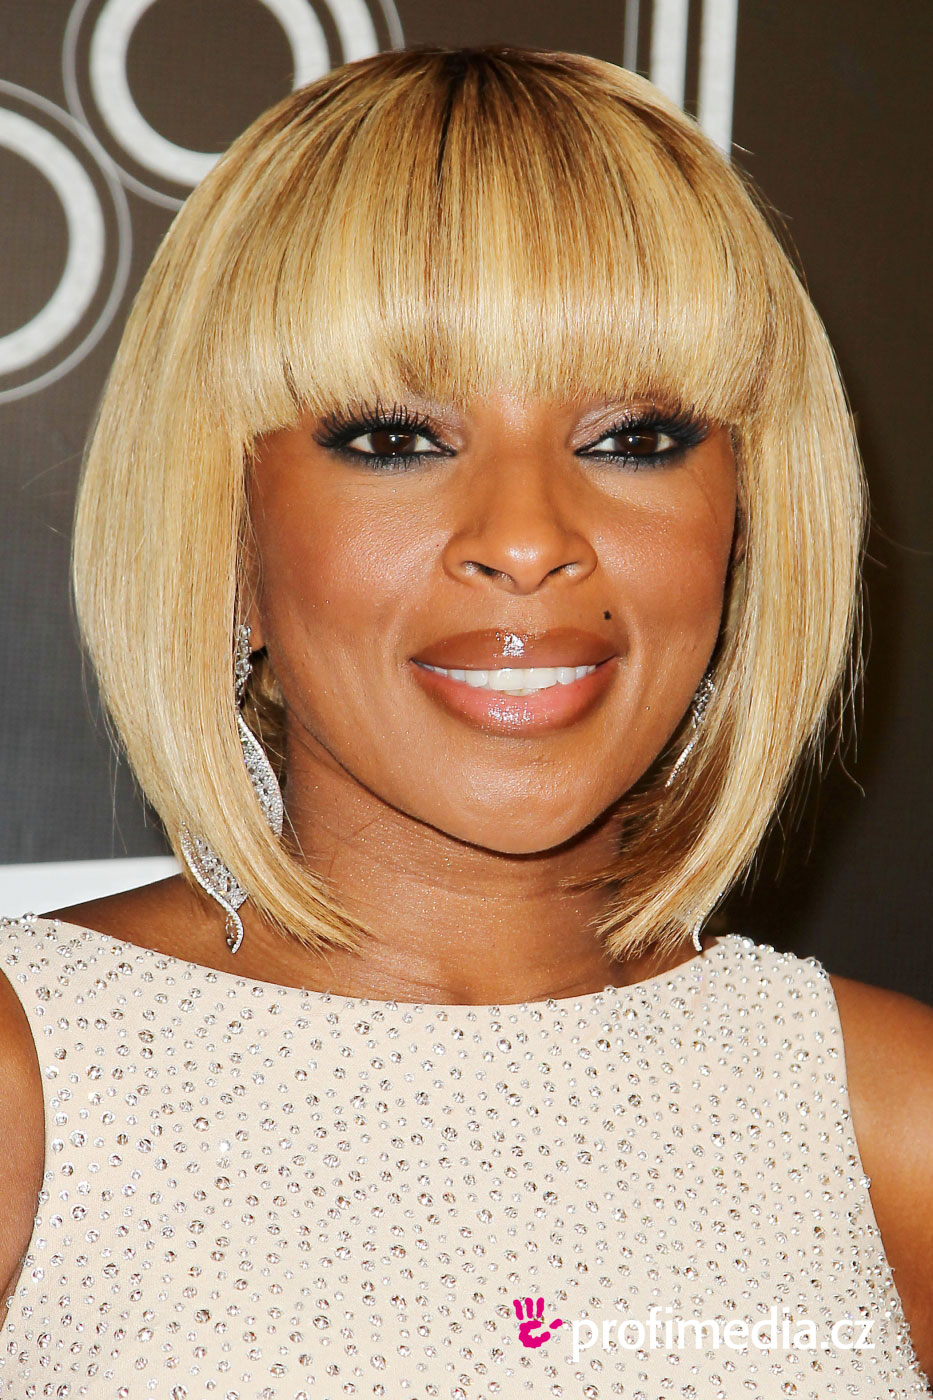 Mary J. Blige - - hairstyle - easyHairStyler